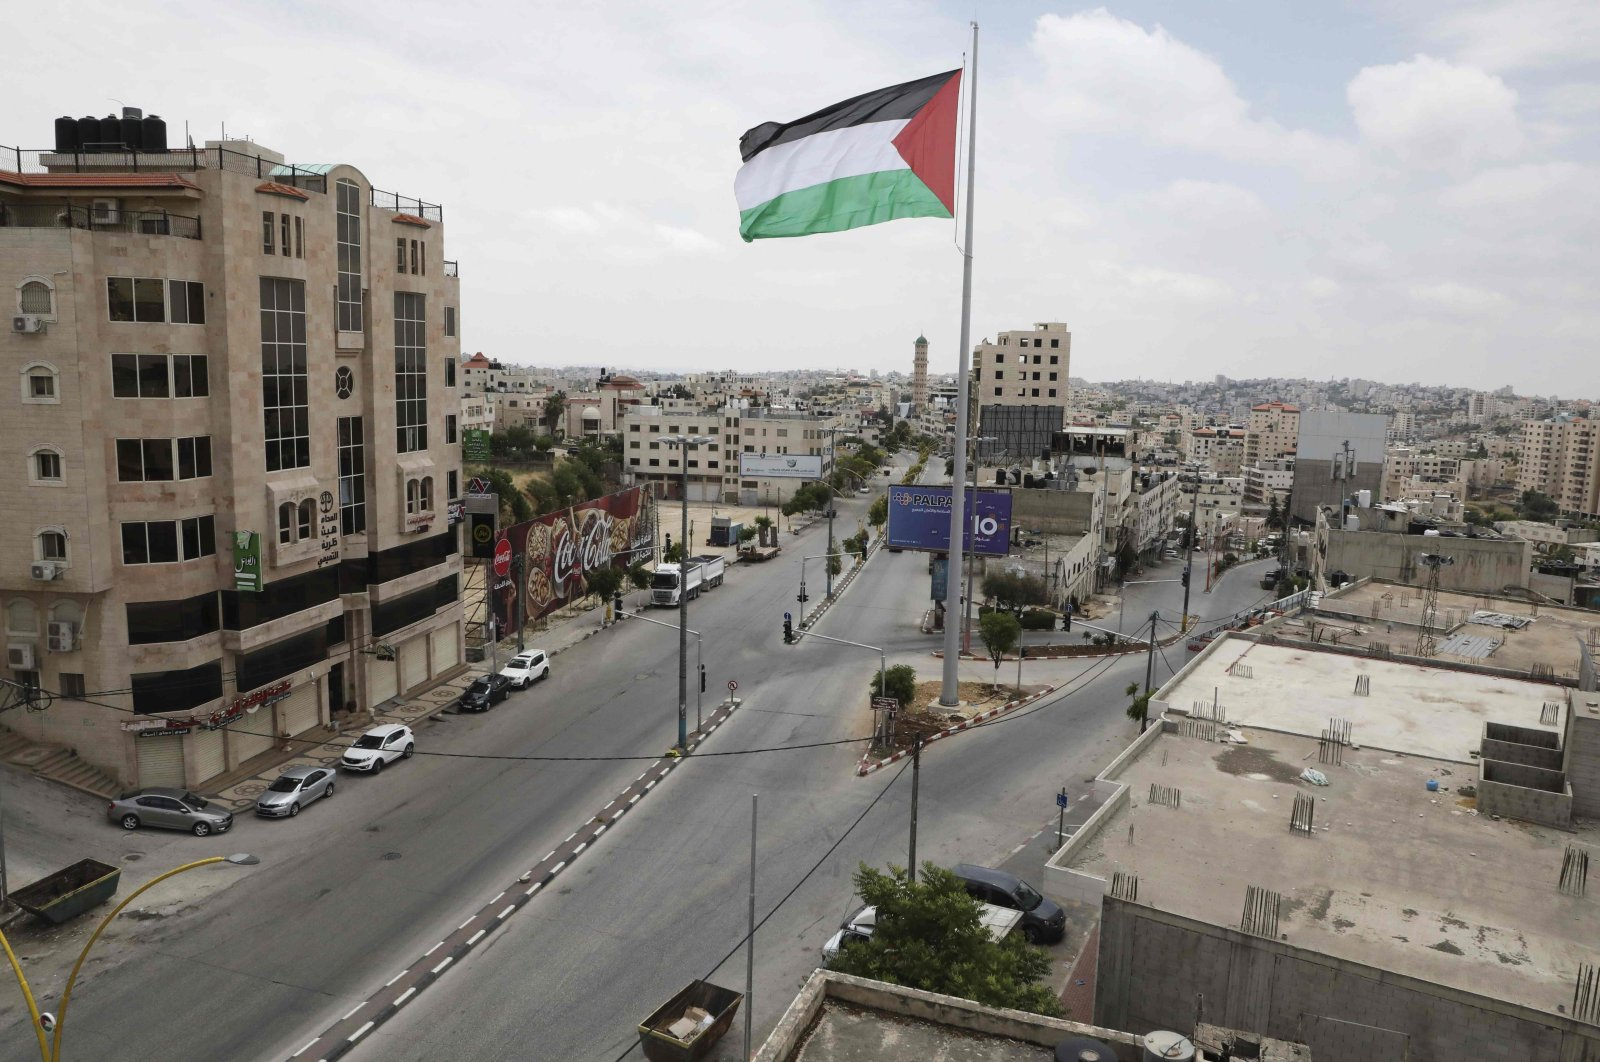 A view shows a deserted street in the occupied West Bank city of Hebron on the last day of the Muslim fasting month of Ramadan amid the COVID-19 pandemic, on May 23, 2020. (AFP Photo)